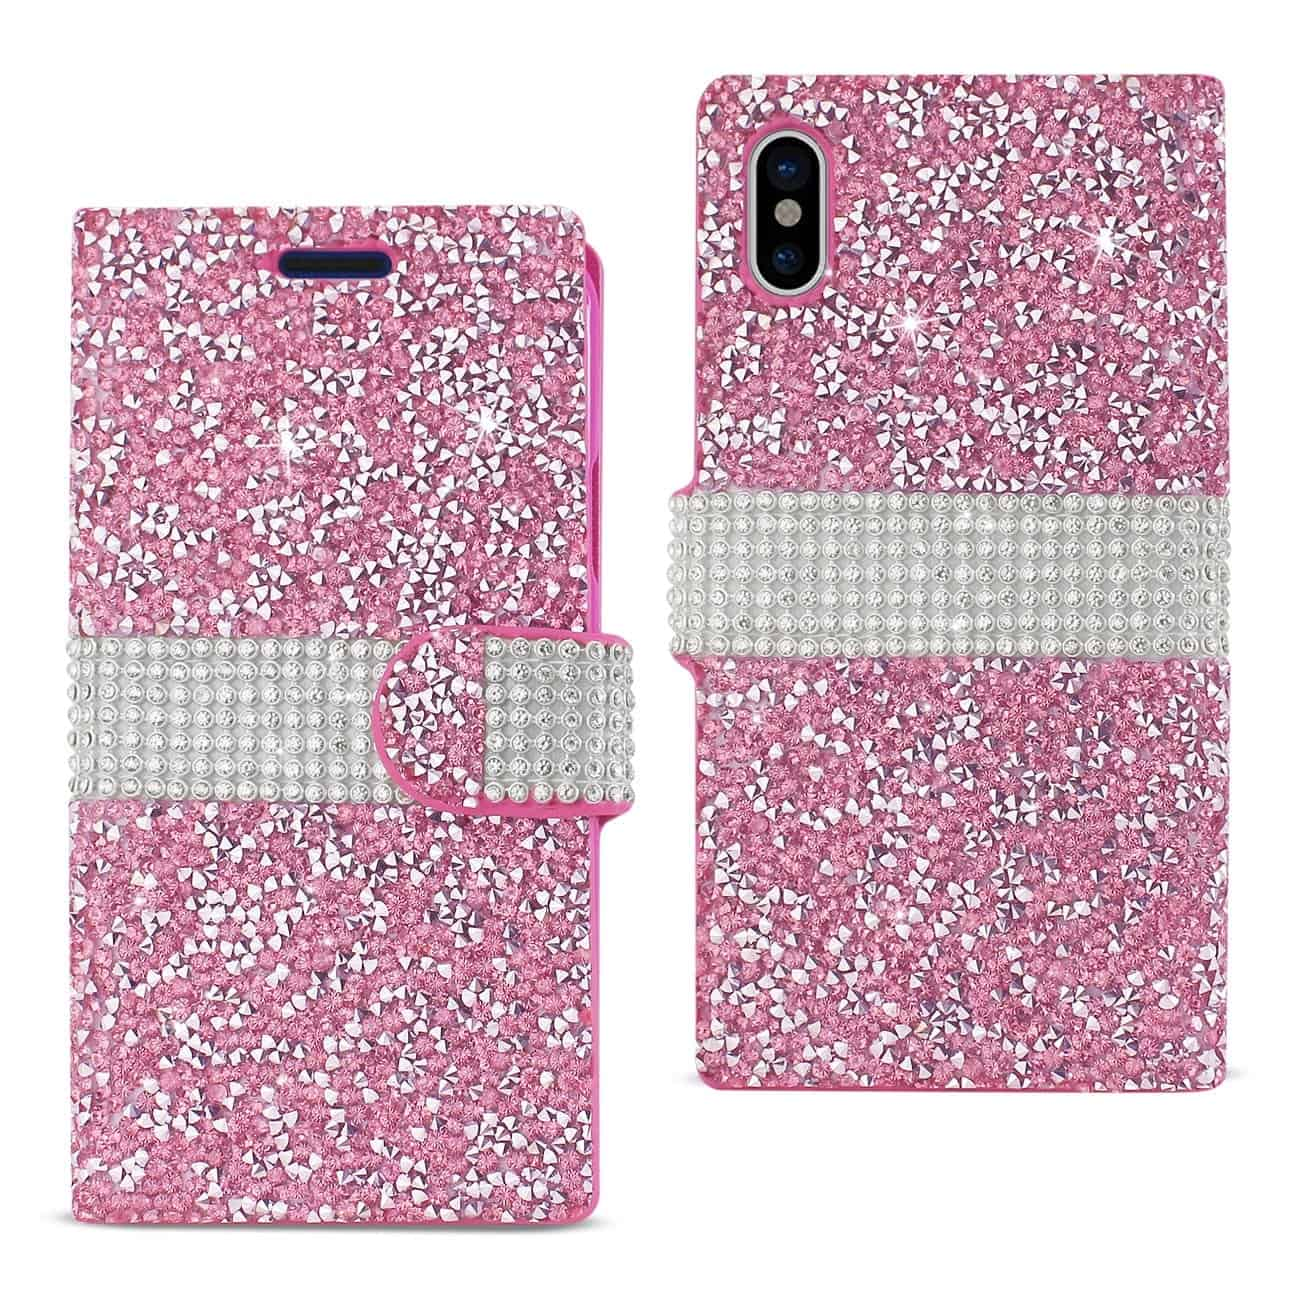 IPHONE X DIAMOND RHINESTONE WALLET CASE IN PINK